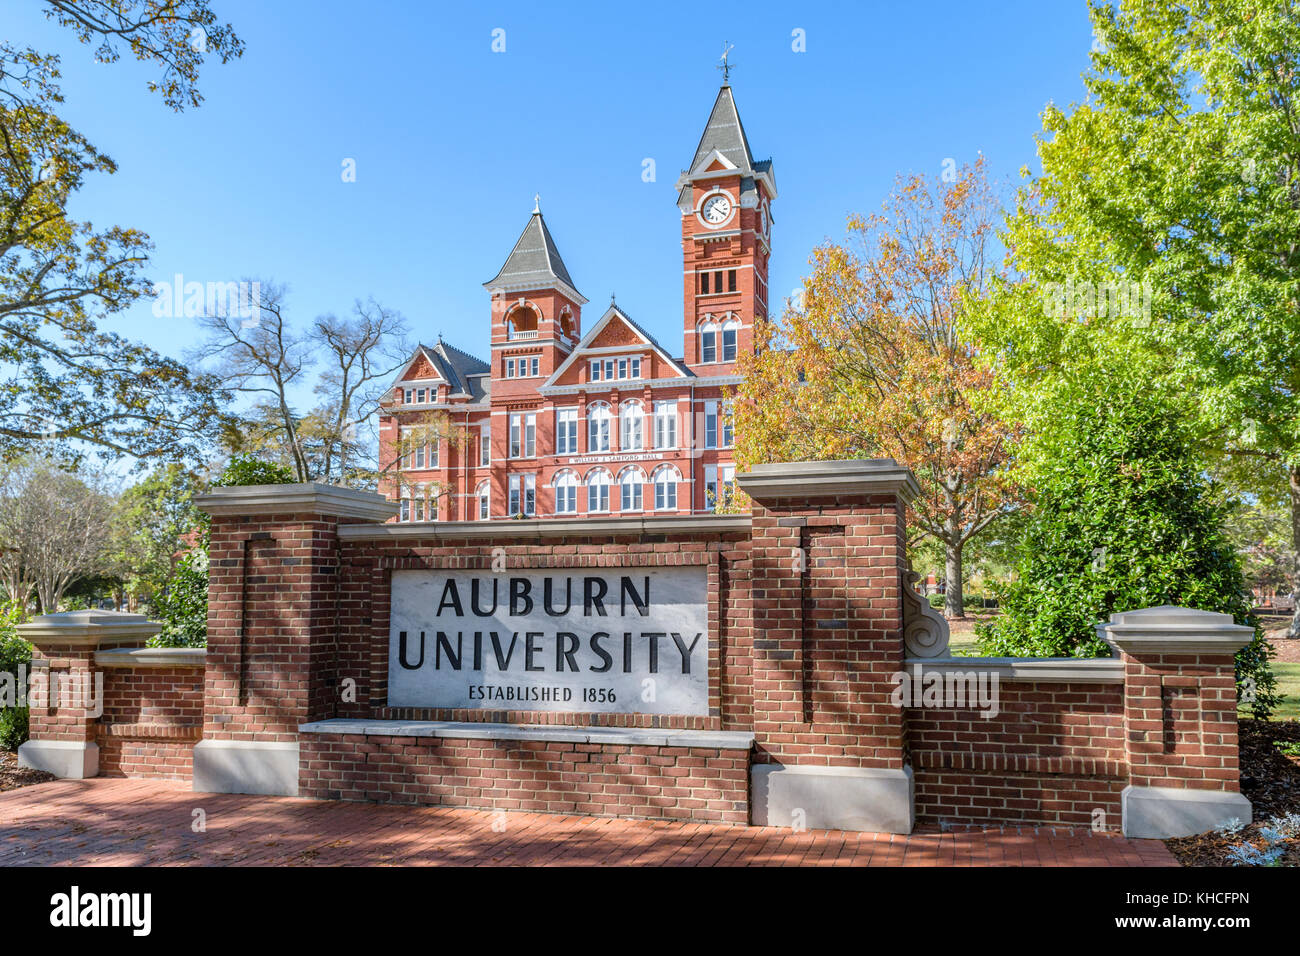 Auburn University, William J Samford Hall, administration building on the college campus with it's clock tower in Stock Photo